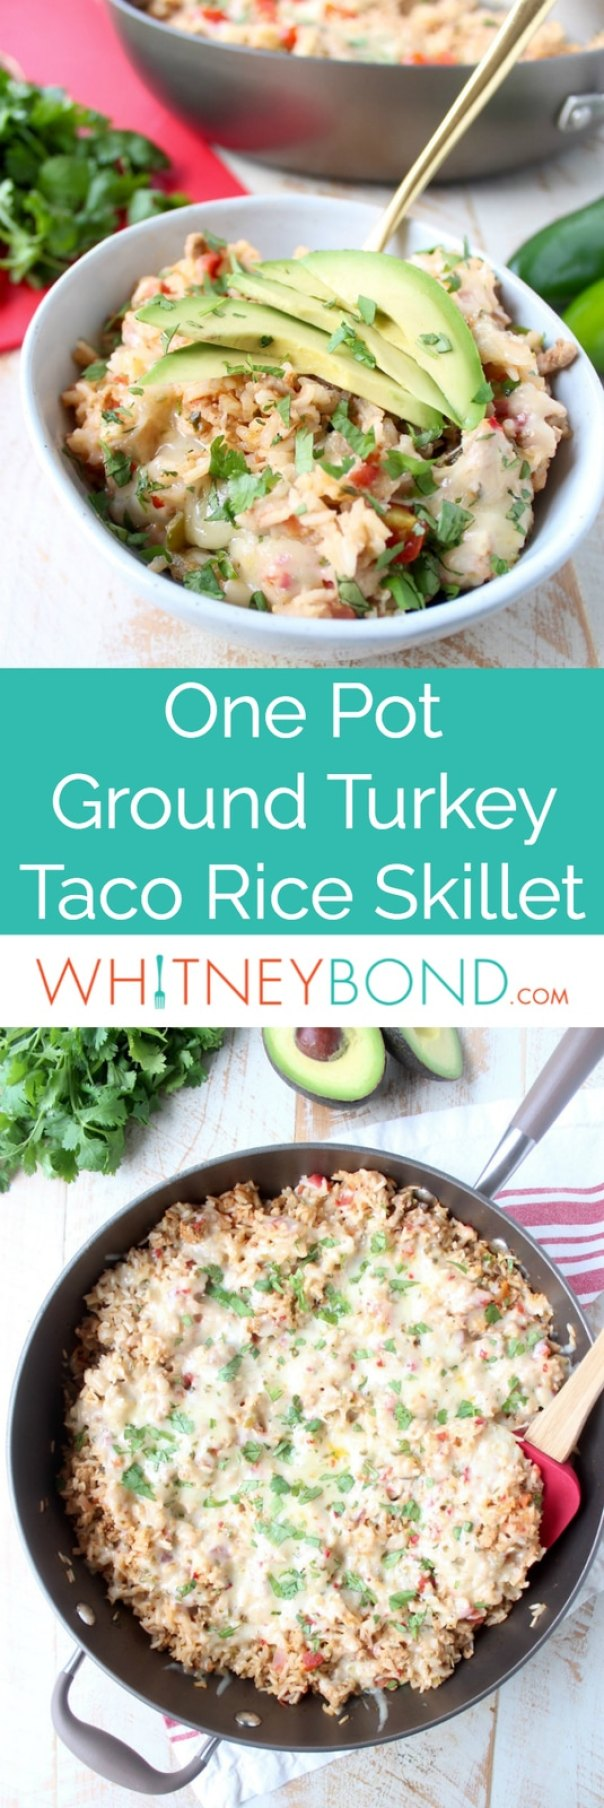 This One Pot Taco Rice Skillet recipe combines ground turkey, rice, veggies, spices & cheese for a quick and easy weeknight dinner that is so delicious!